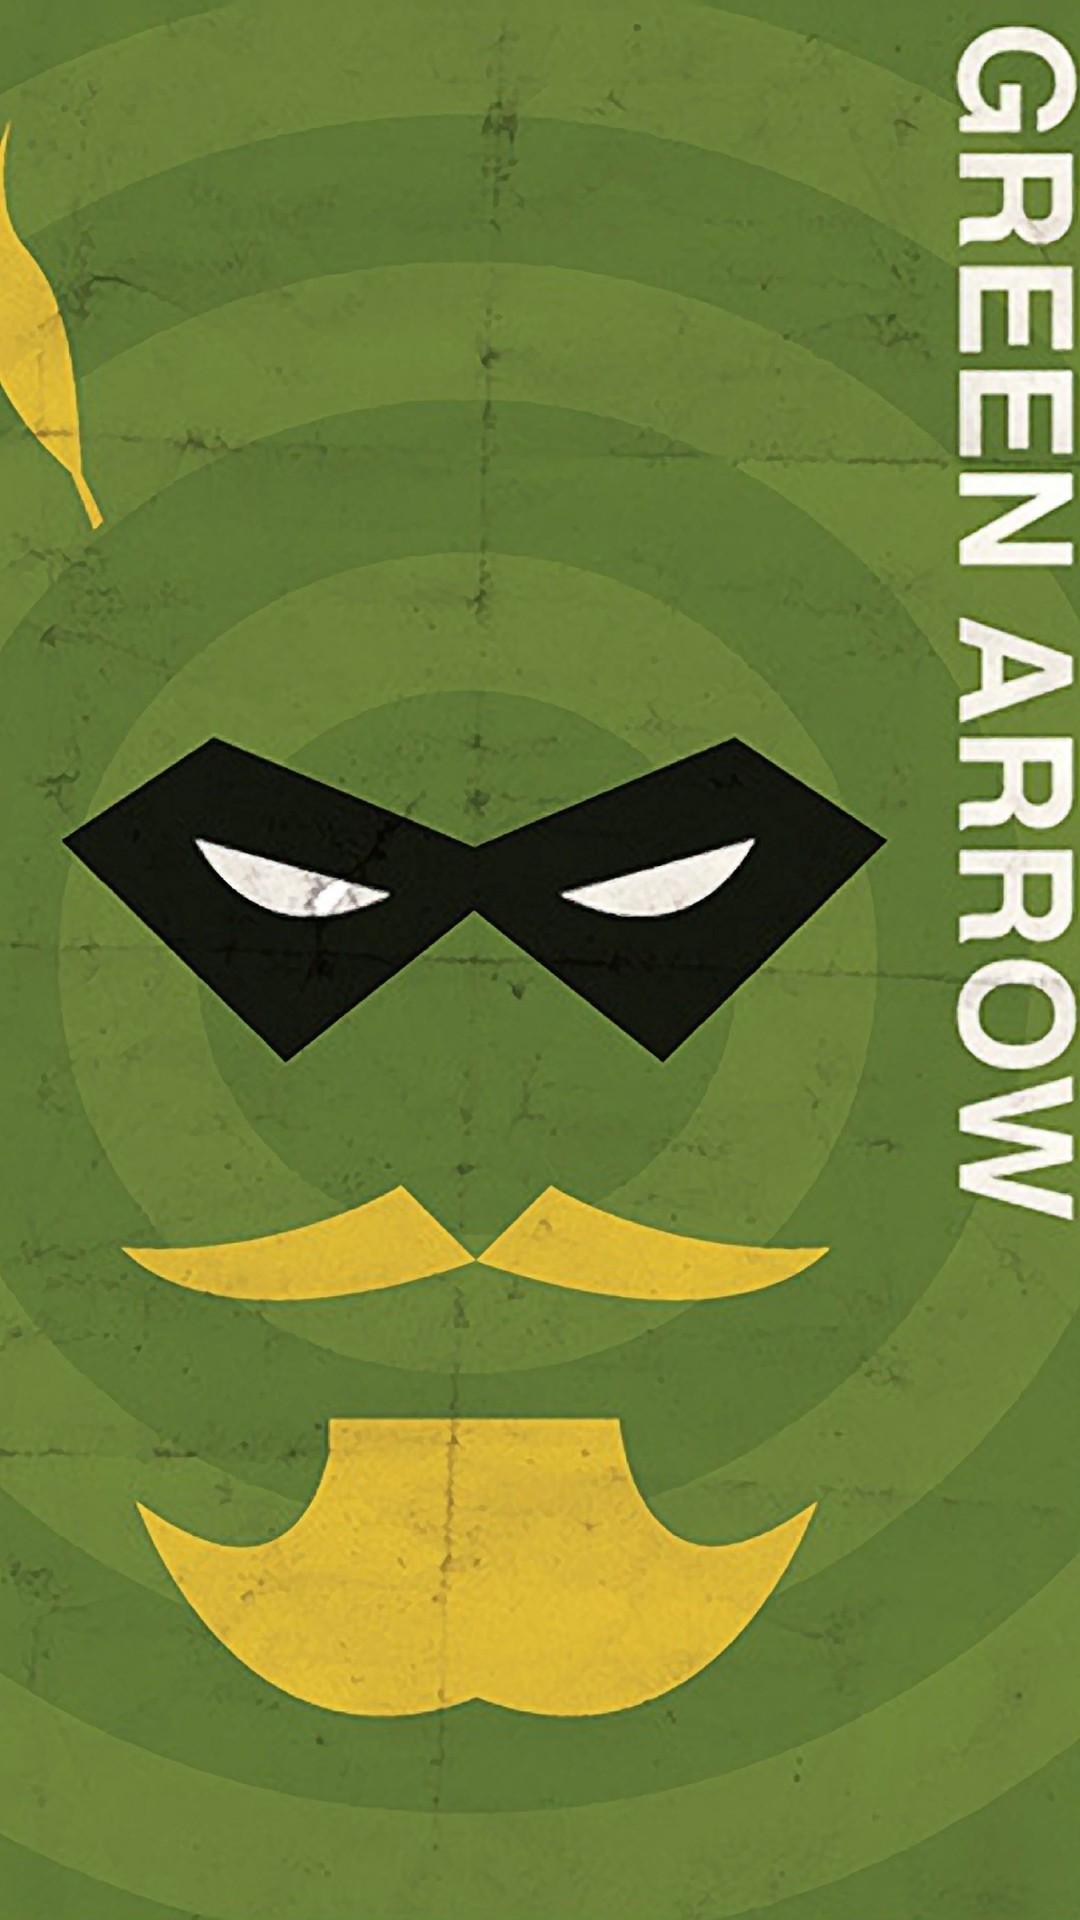 Download Free Arrow Wallpaper for Android – Wallpapercraft